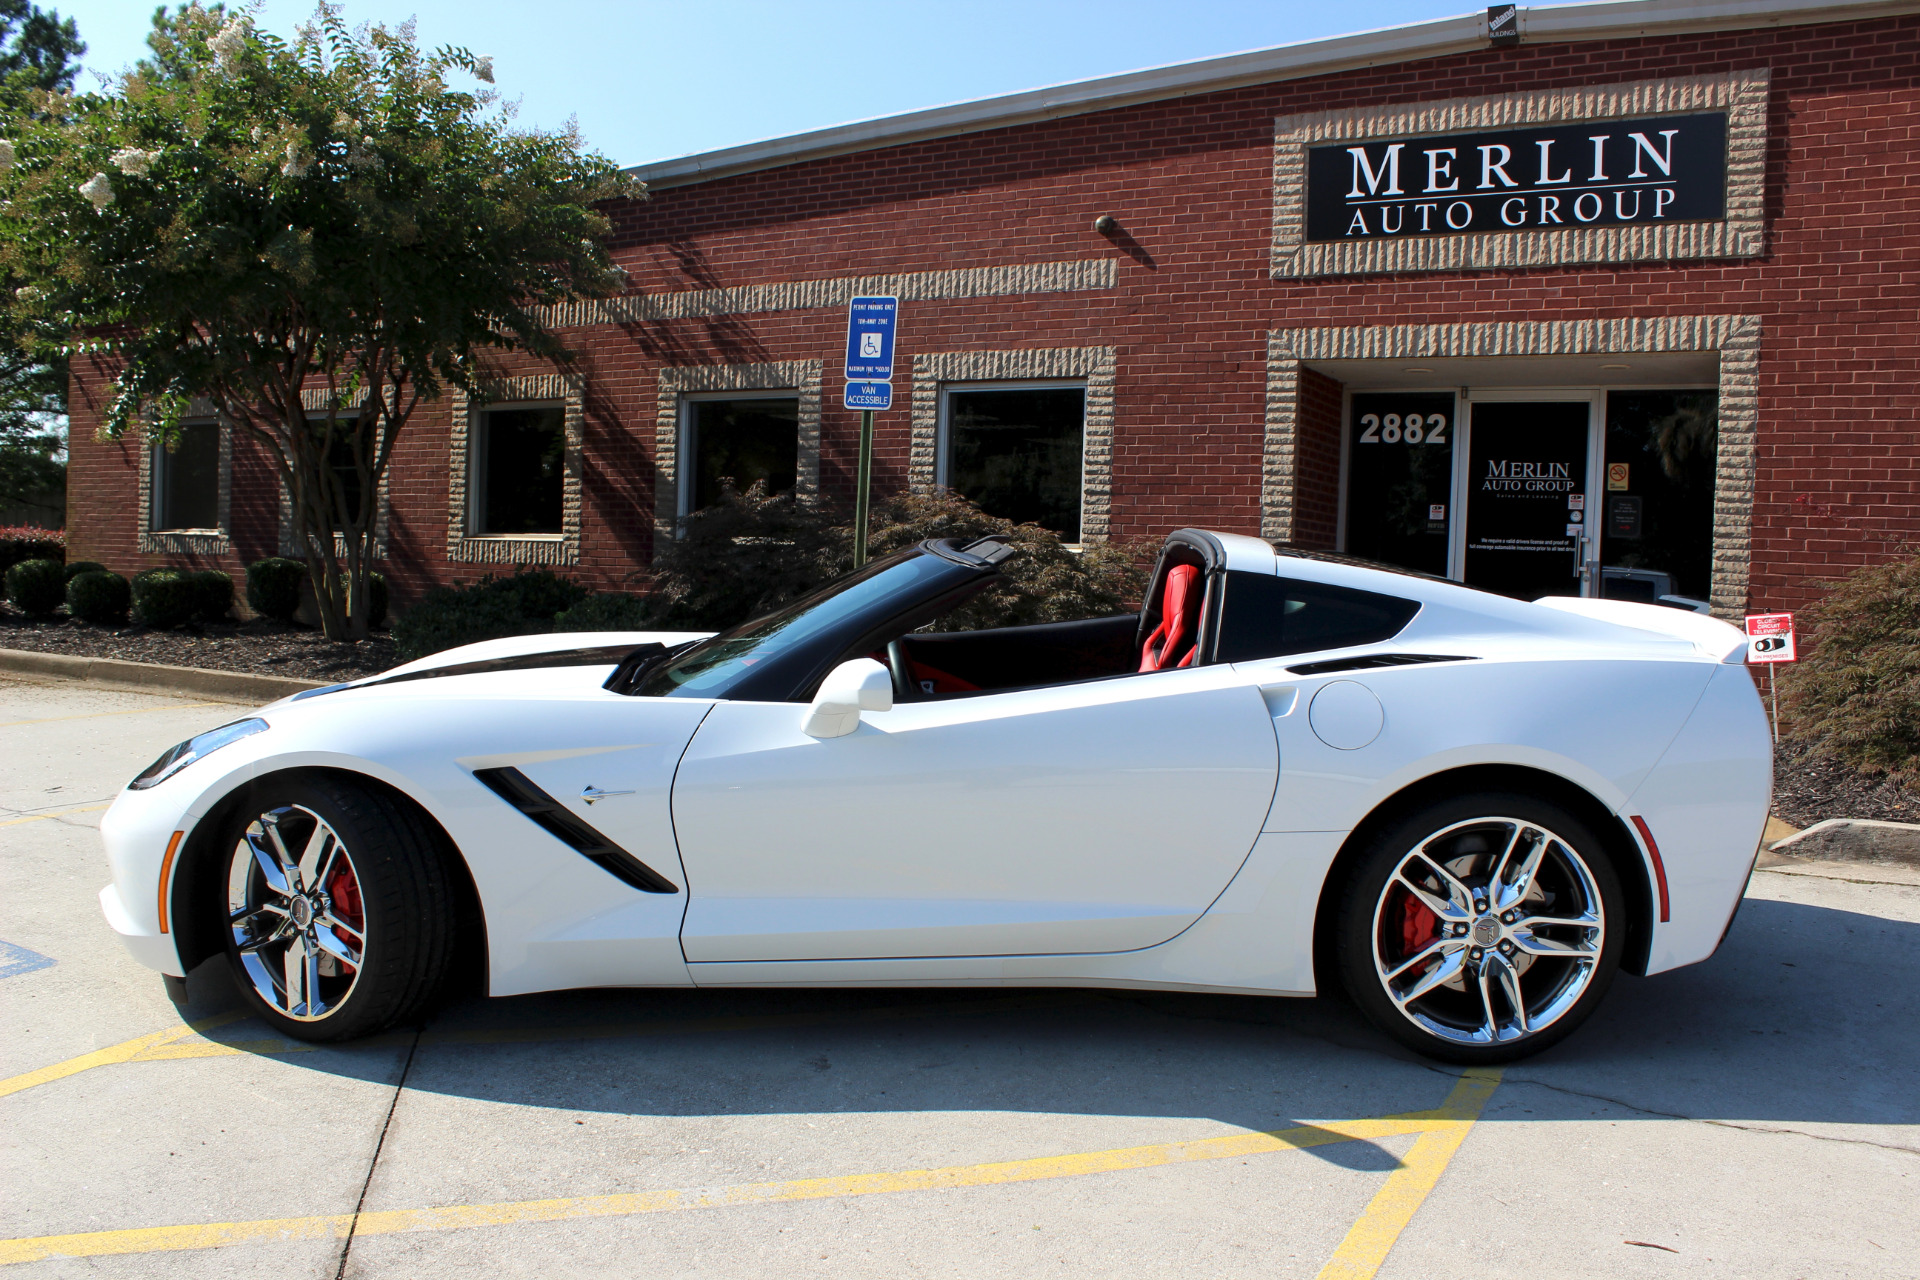 used 2016 chevrolet corvette z51 3lt coupe automatic white coupe 2 dr v8 8 used. Black Bedroom Furniture Sets. Home Design Ideas